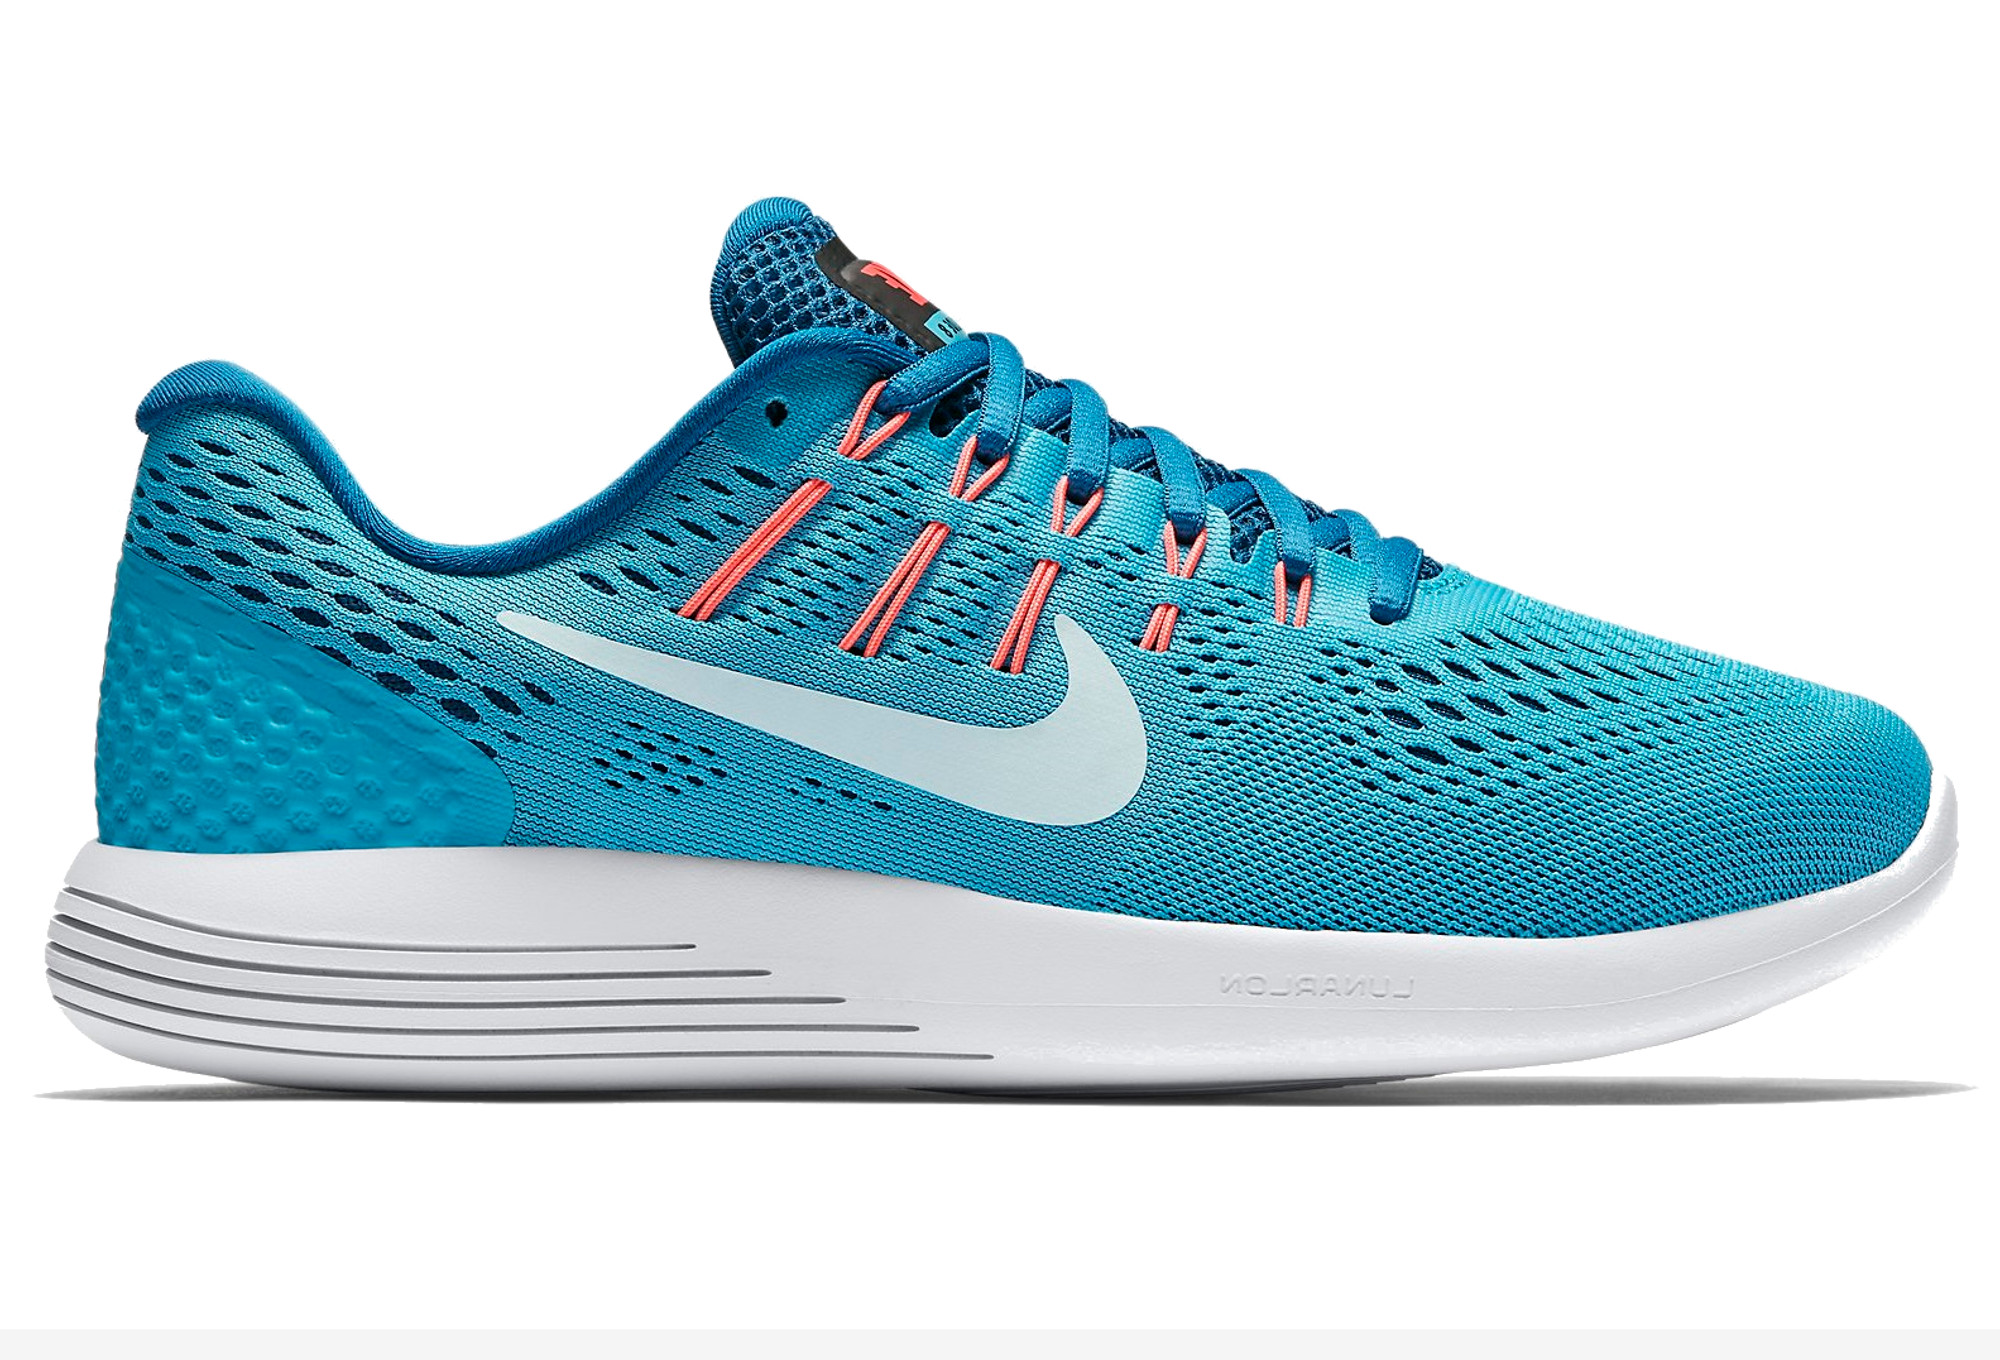 best service 1aac1 98e88 Nike LunarGlide 8 Shoes Blue Women   Alltricks.com